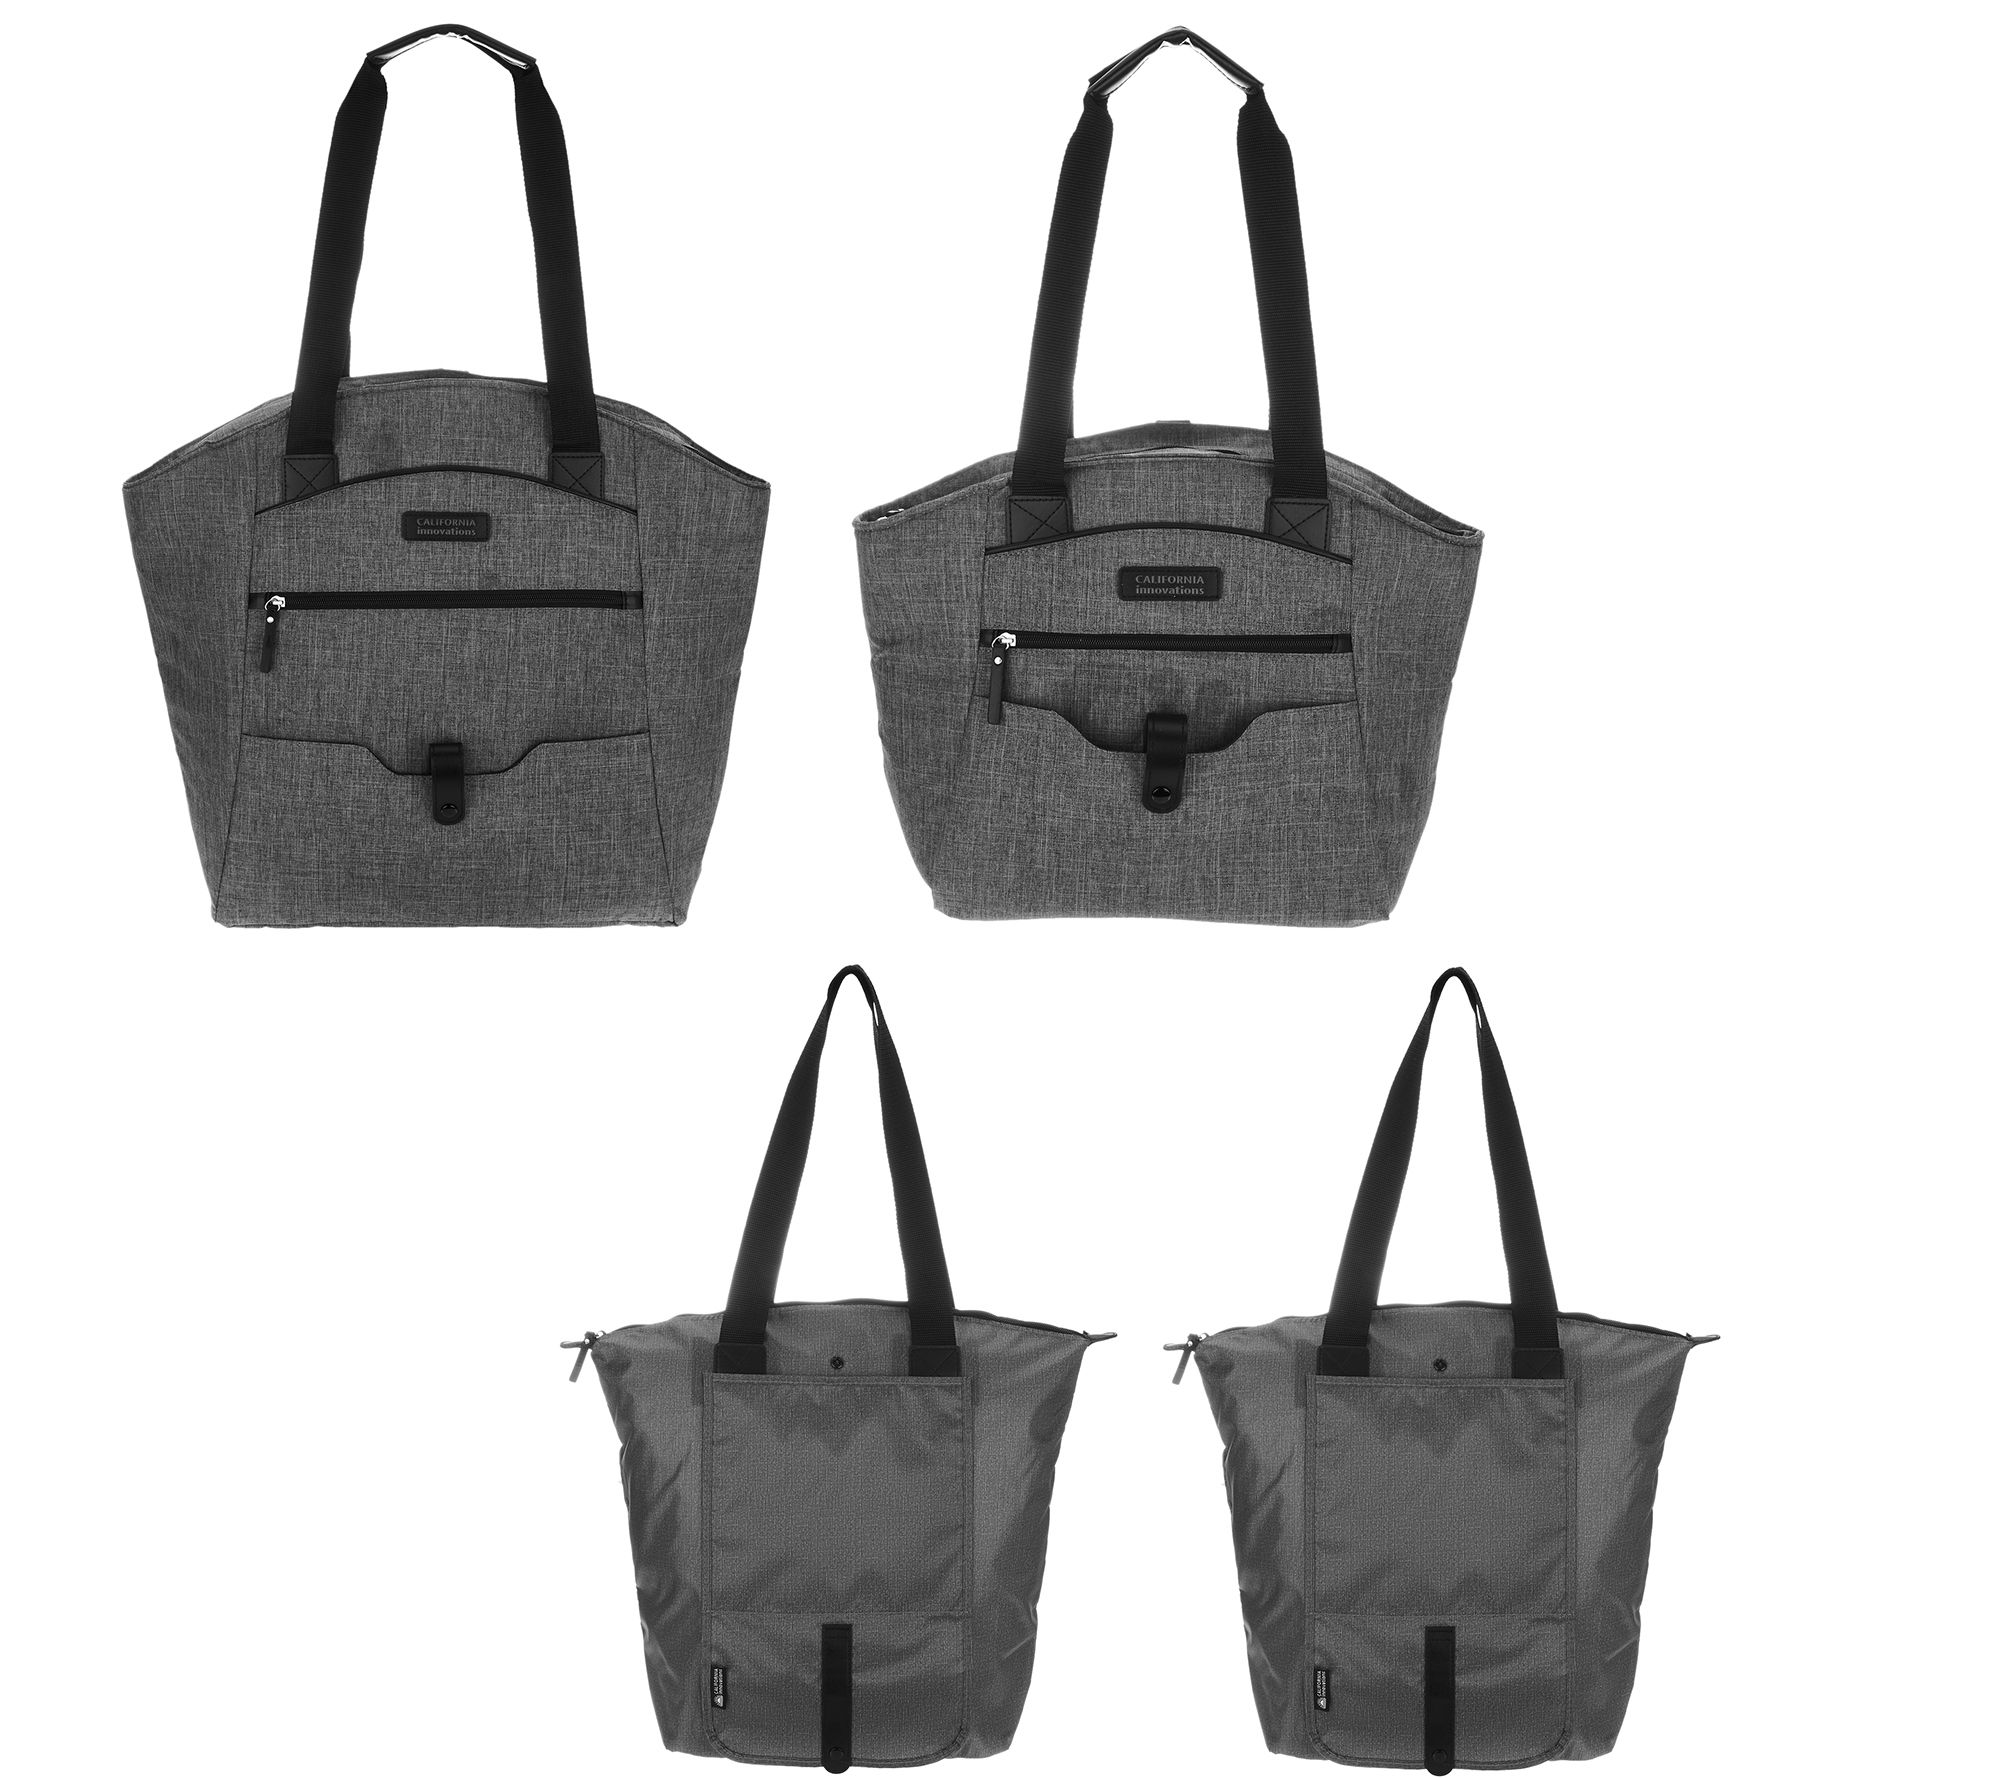 578654d00b2a California Innovations 4 pc Thermal Insulated Bag   Tote Set - Page ...